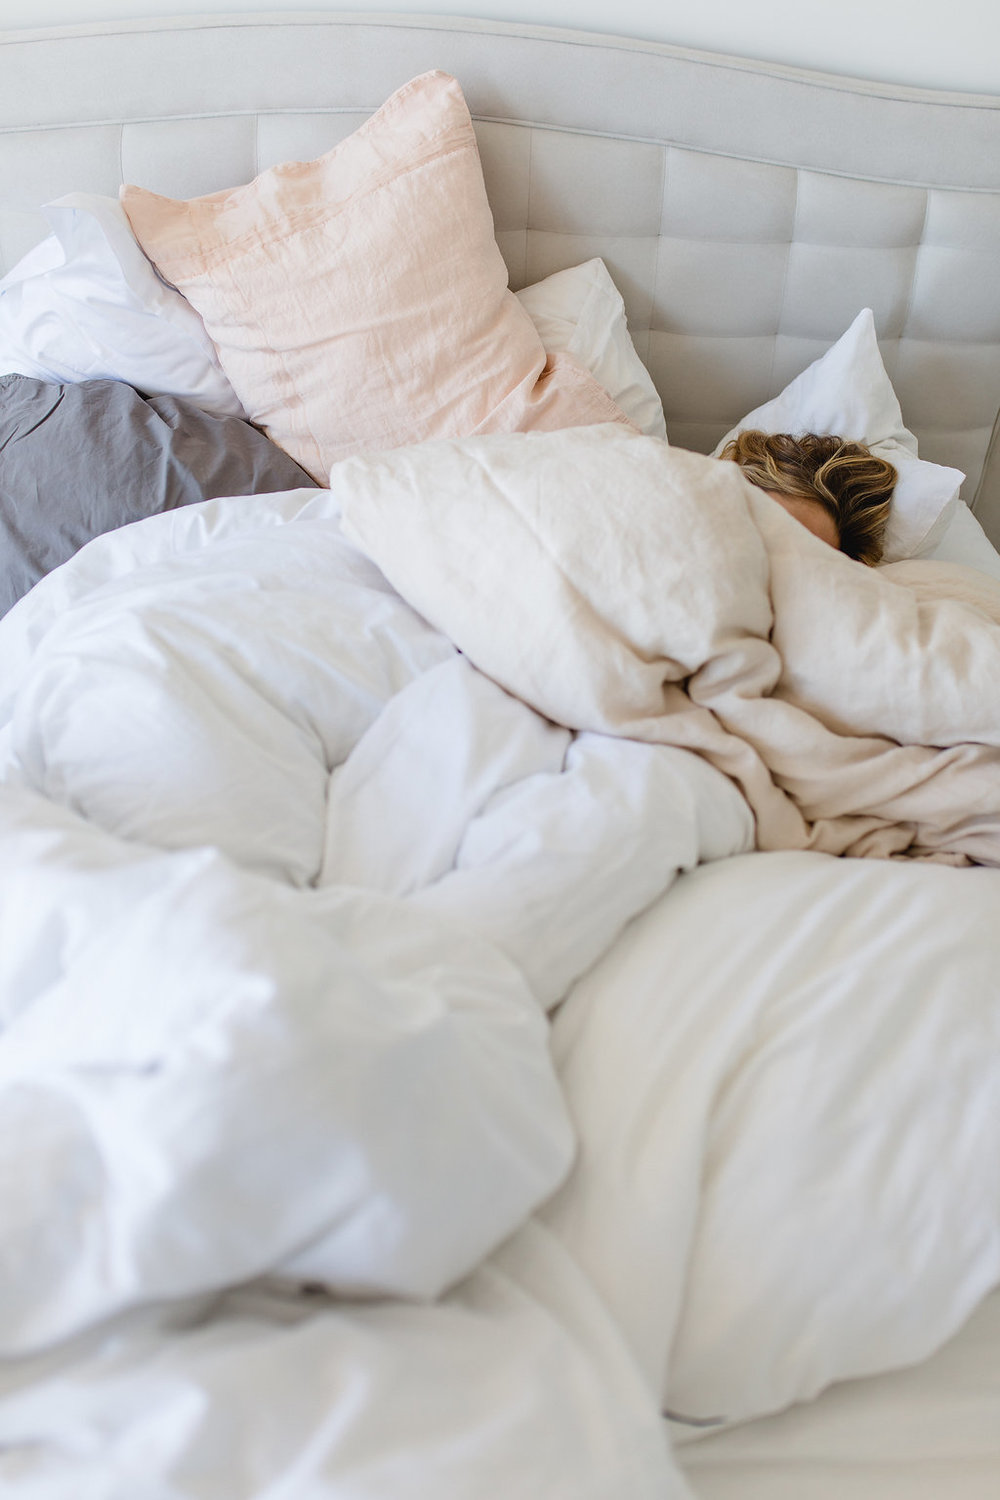 """my luxury linen"", scandinavian bedding basics, svenska sängkläder, My Luxury Linen Sleep Blog - Scandinavian Luxury bedding online"